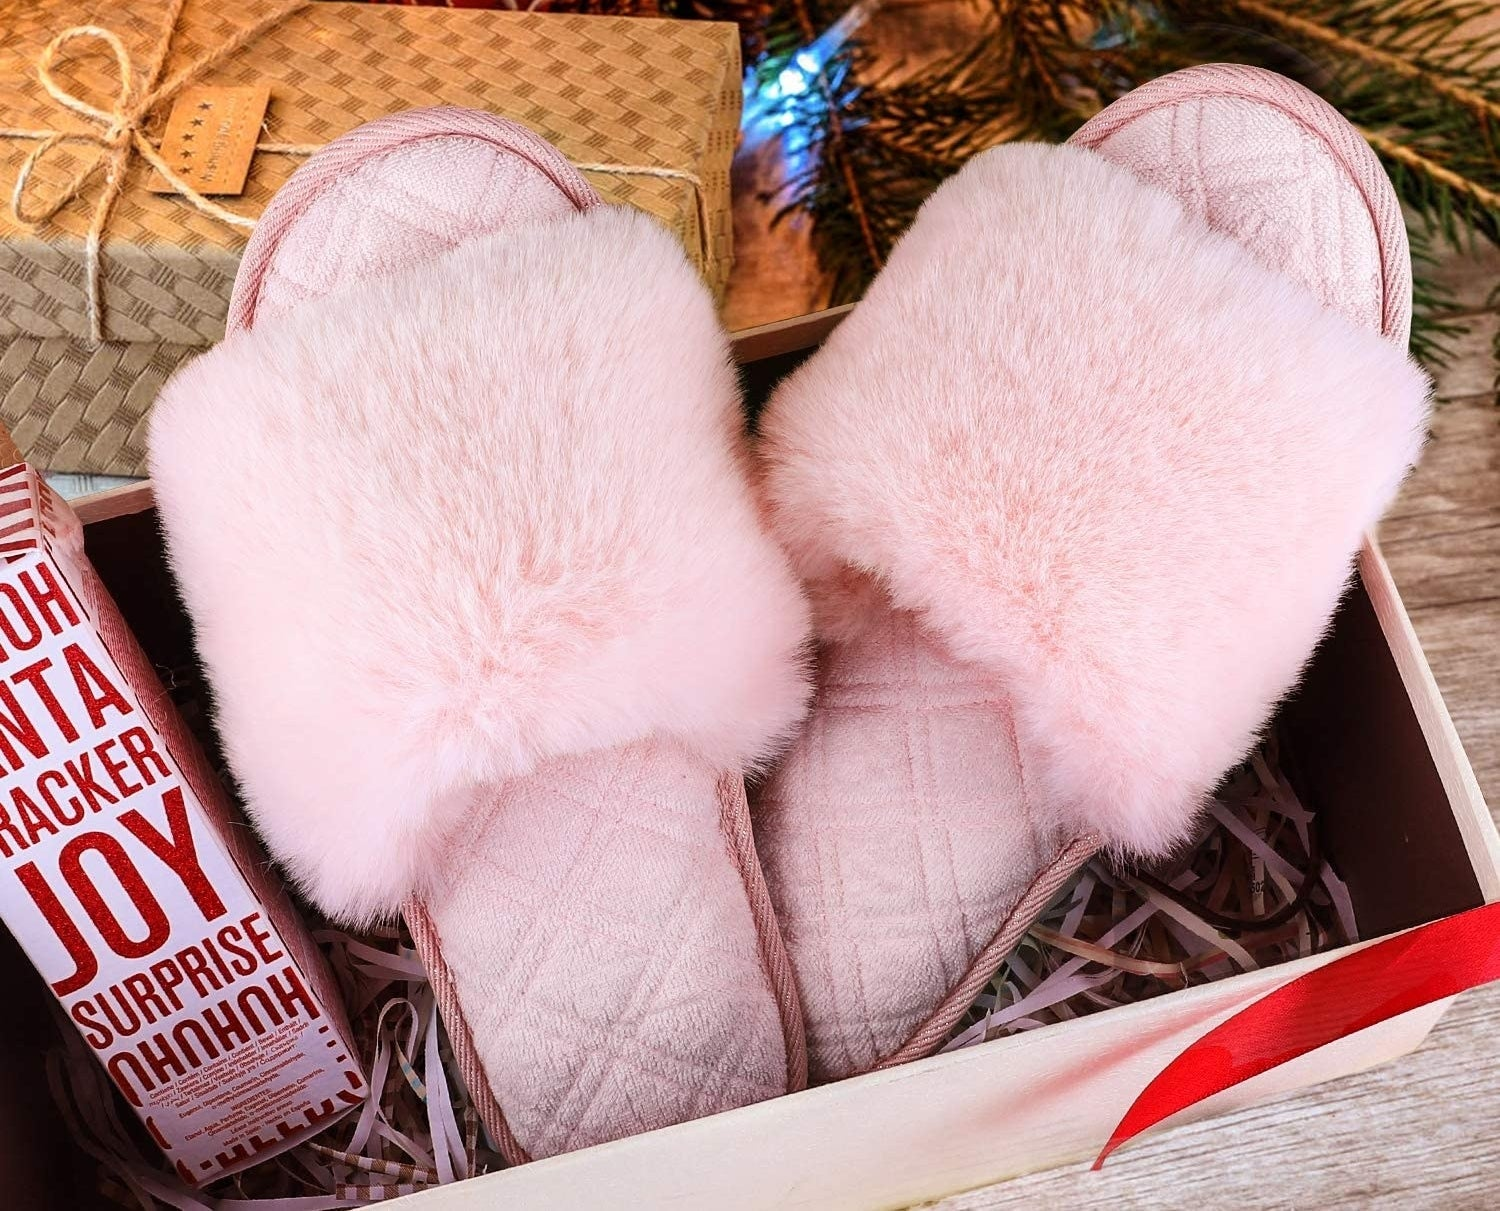 A pair of slippers in a box